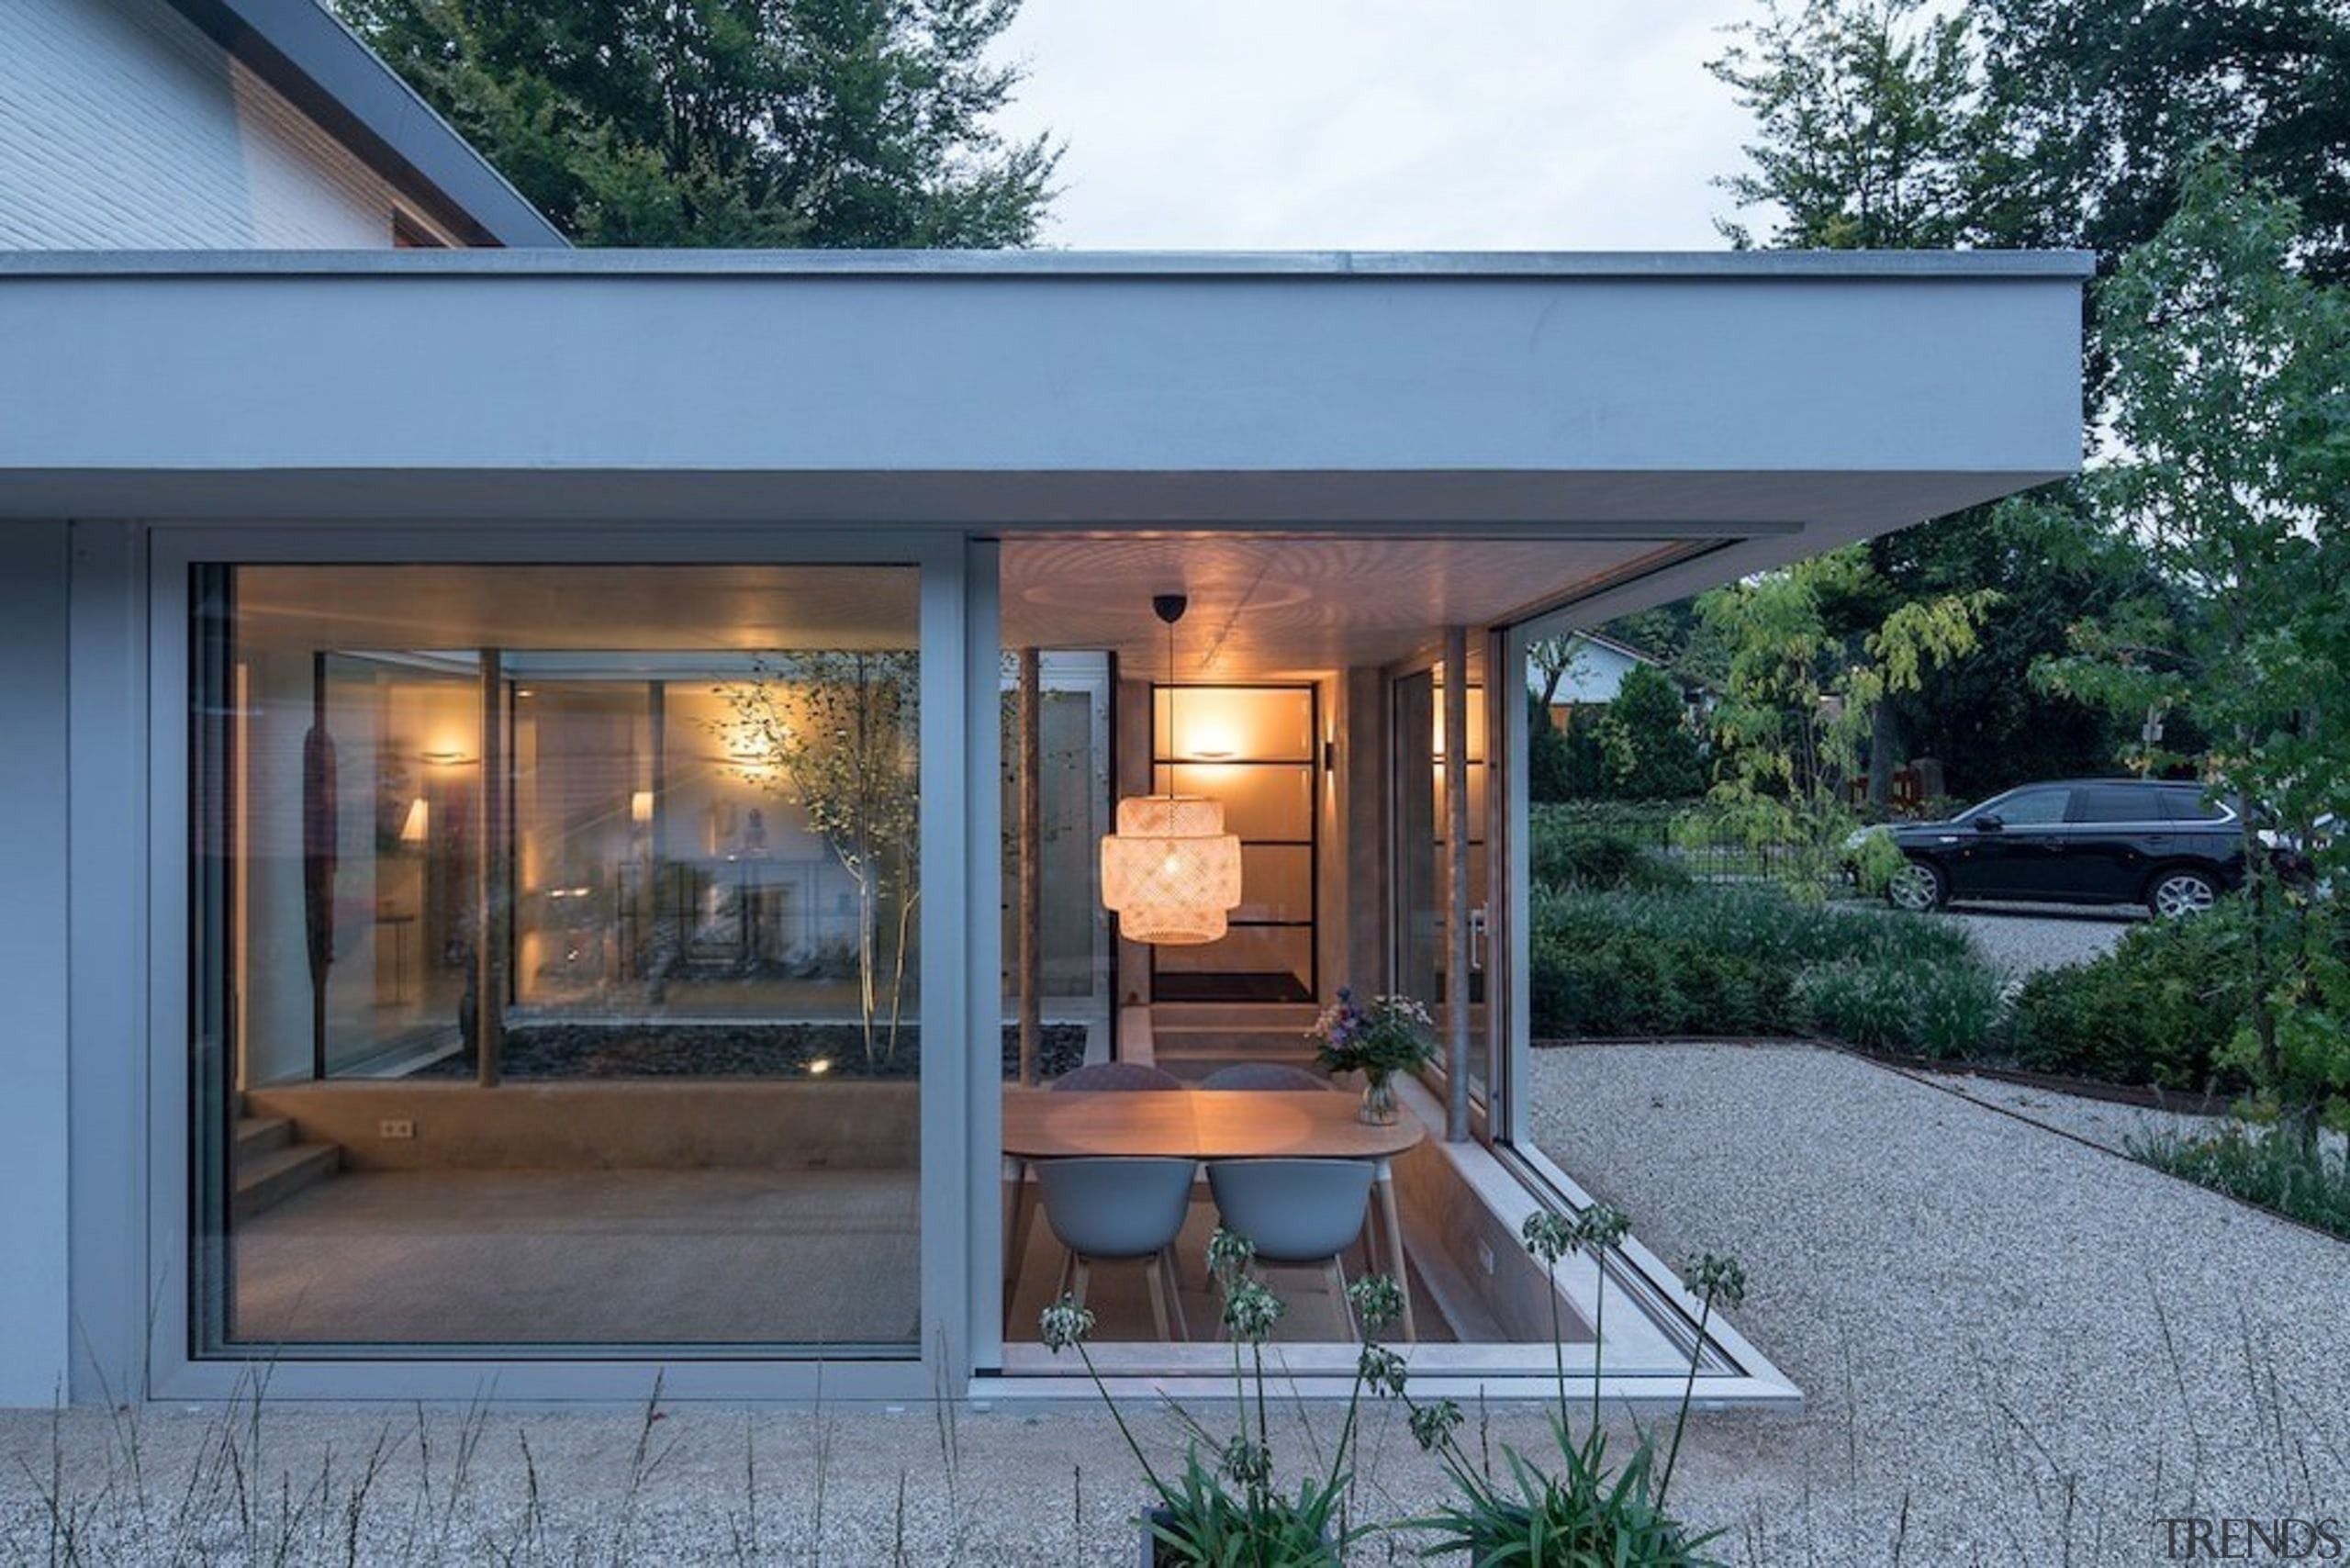 Another view of the sheltered outdoor area - architecture, home, house, real estate, window, teal